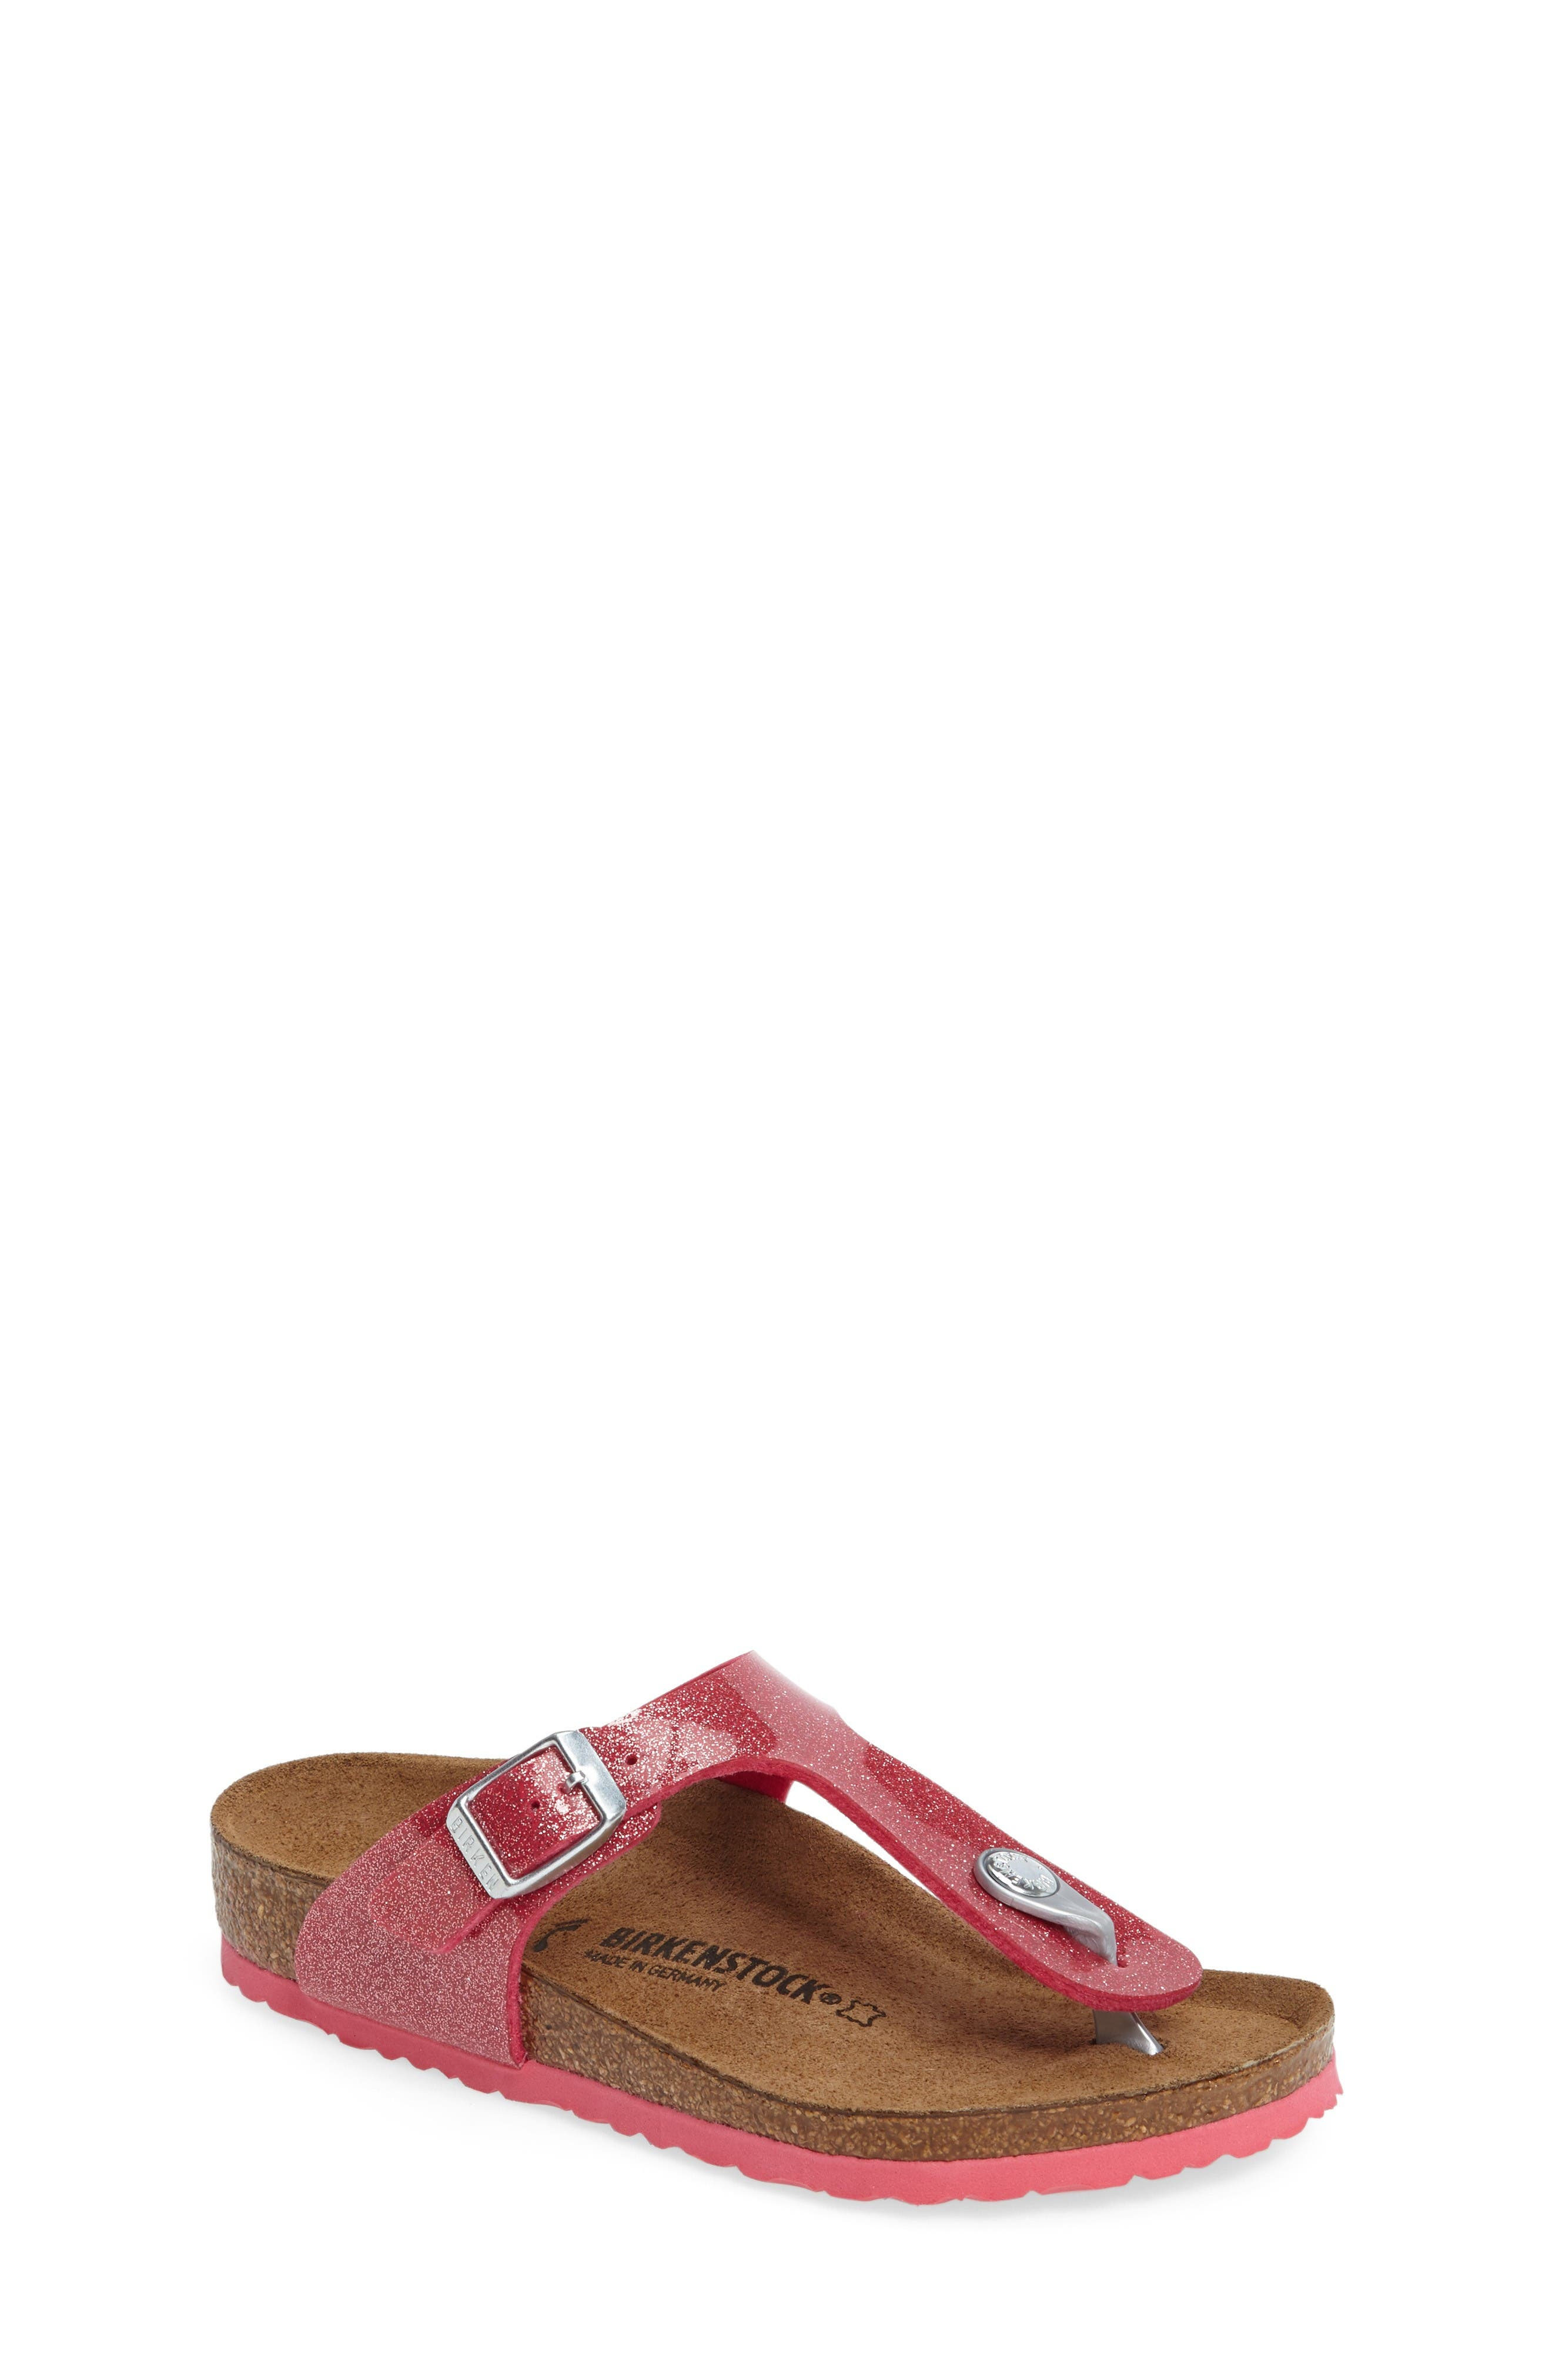 Birkenstock 'Gizeh Galaxy Birko-Flor' Thong Sandal (Toddler & Little Kid)